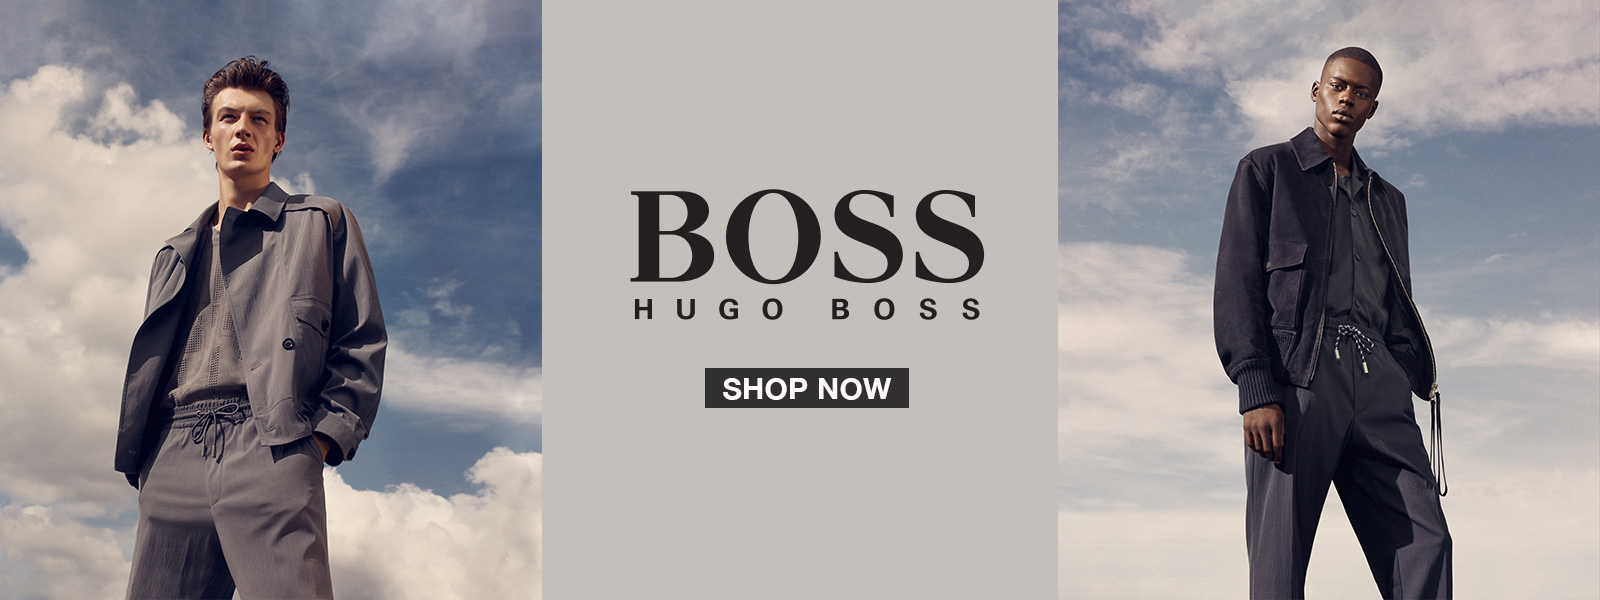 BOSS HUGO BOSS - Spring Summer 19 Collection - Shop Now